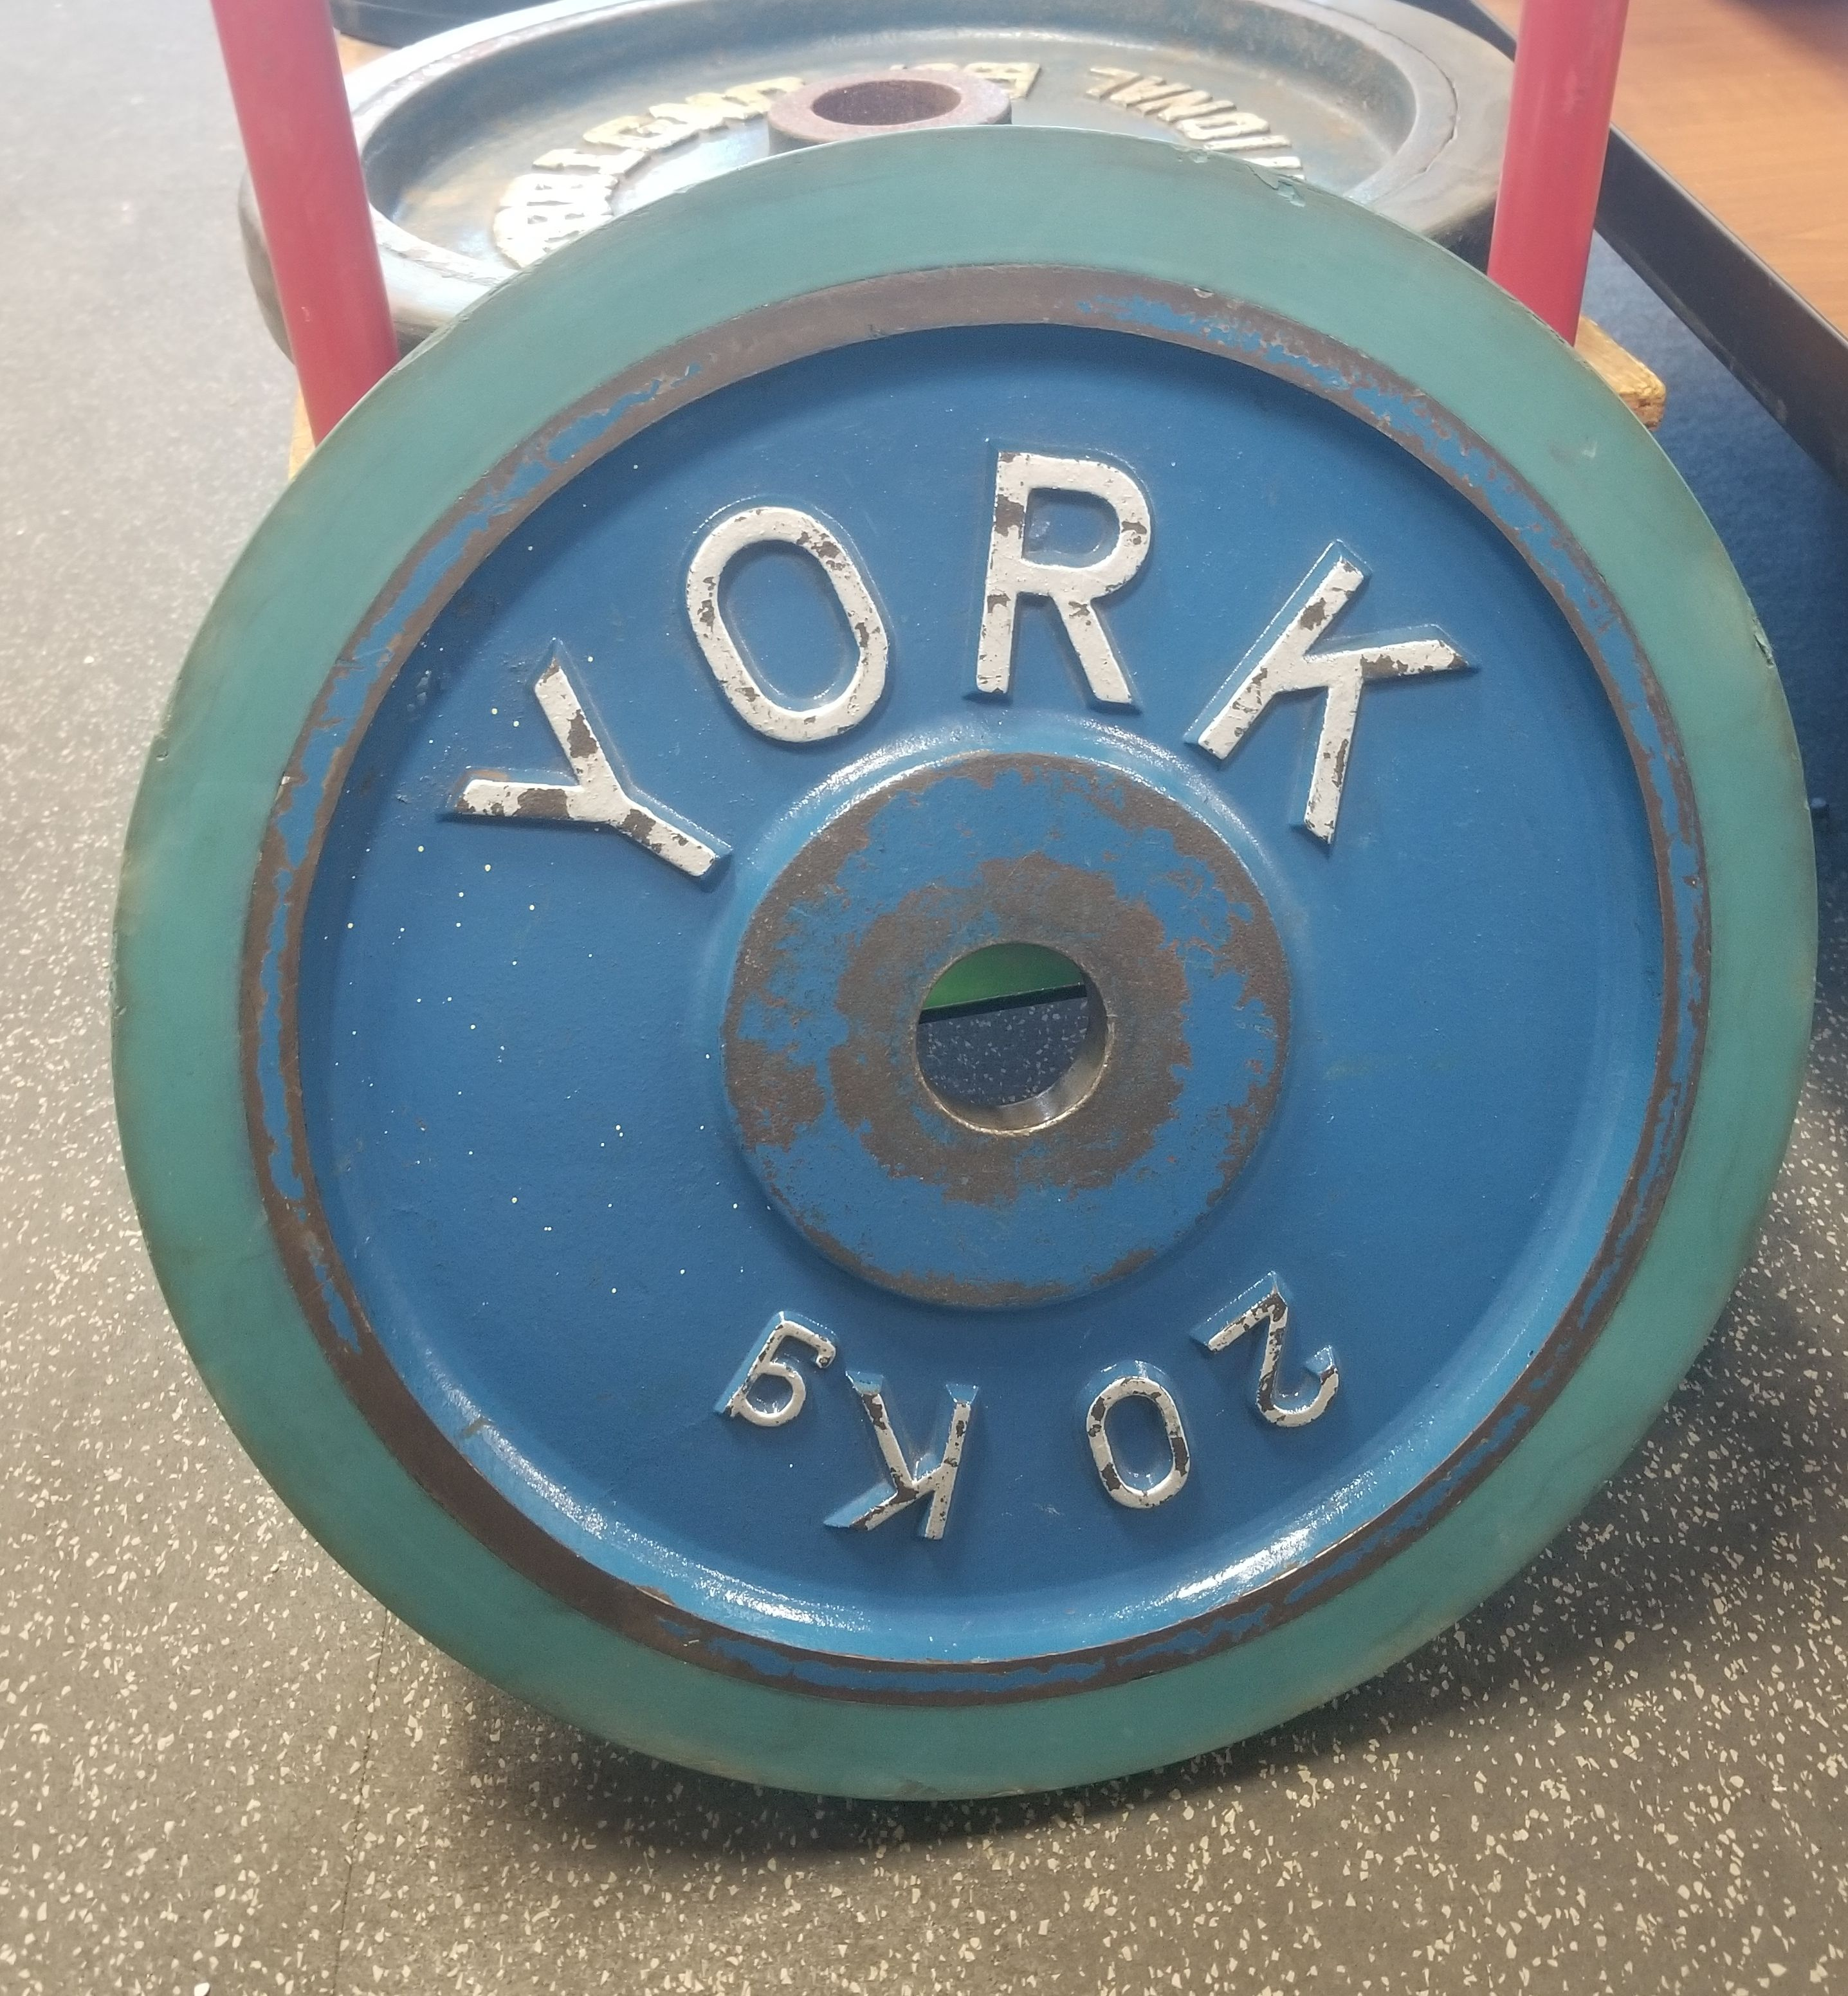 York Barbell Vintage 20kg Olympic Steeel Bumper Plate Squat Rack No Equipment Workout Olympics